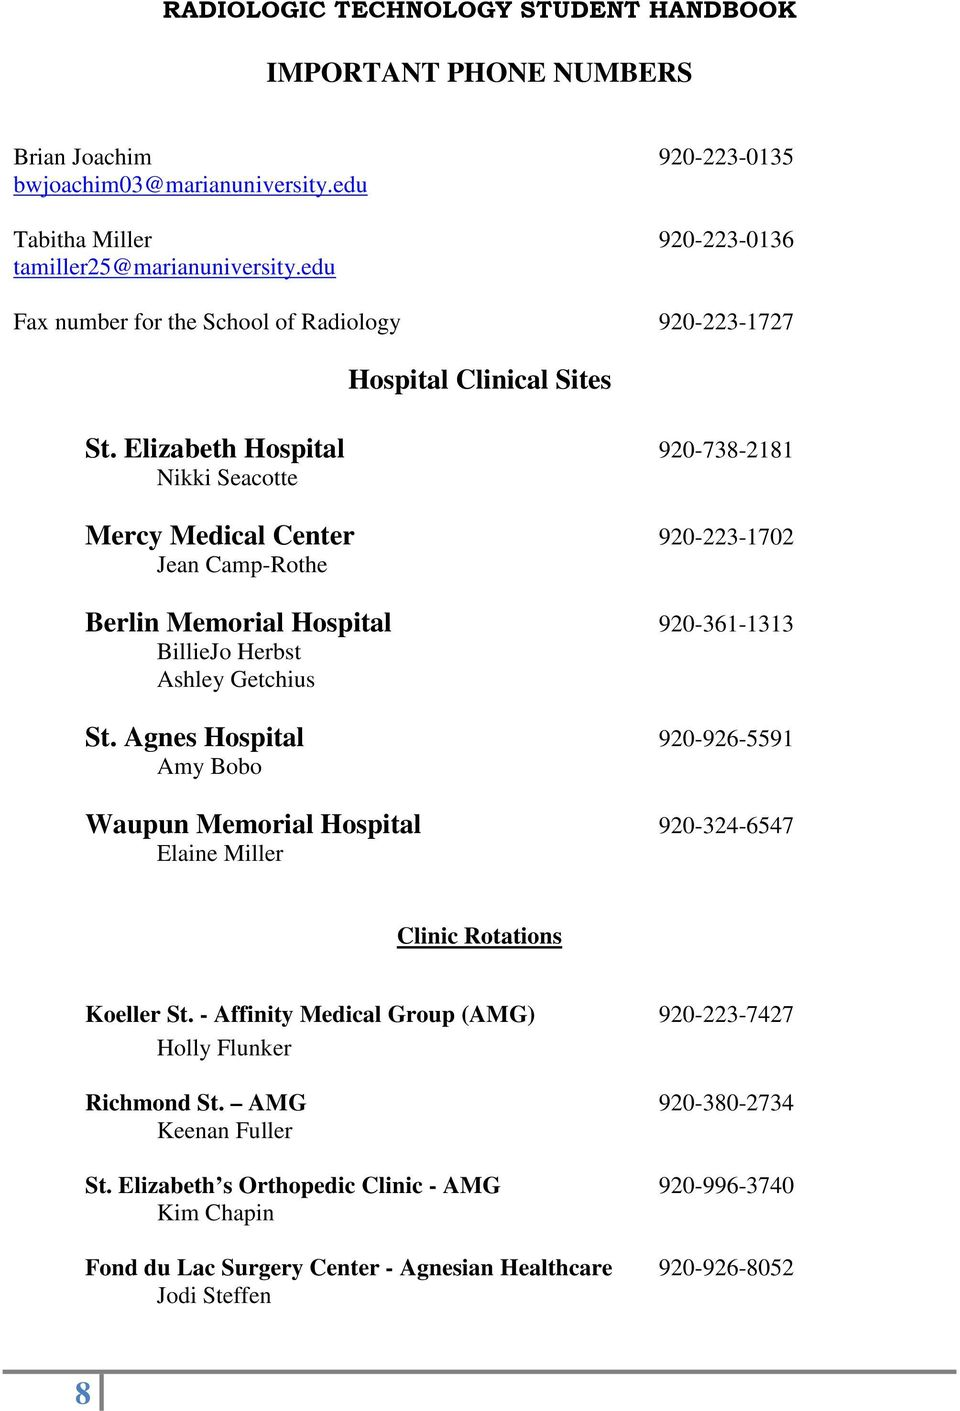 Elizabeth Hospital 920-738-2181 Nikki Seacotte Mercy Medical Center 920-223-1702 Jean Camp-Rothe Berlin Memorial Hospital 920-361-1313 BillieJo Herbst Ashley Getchius St.